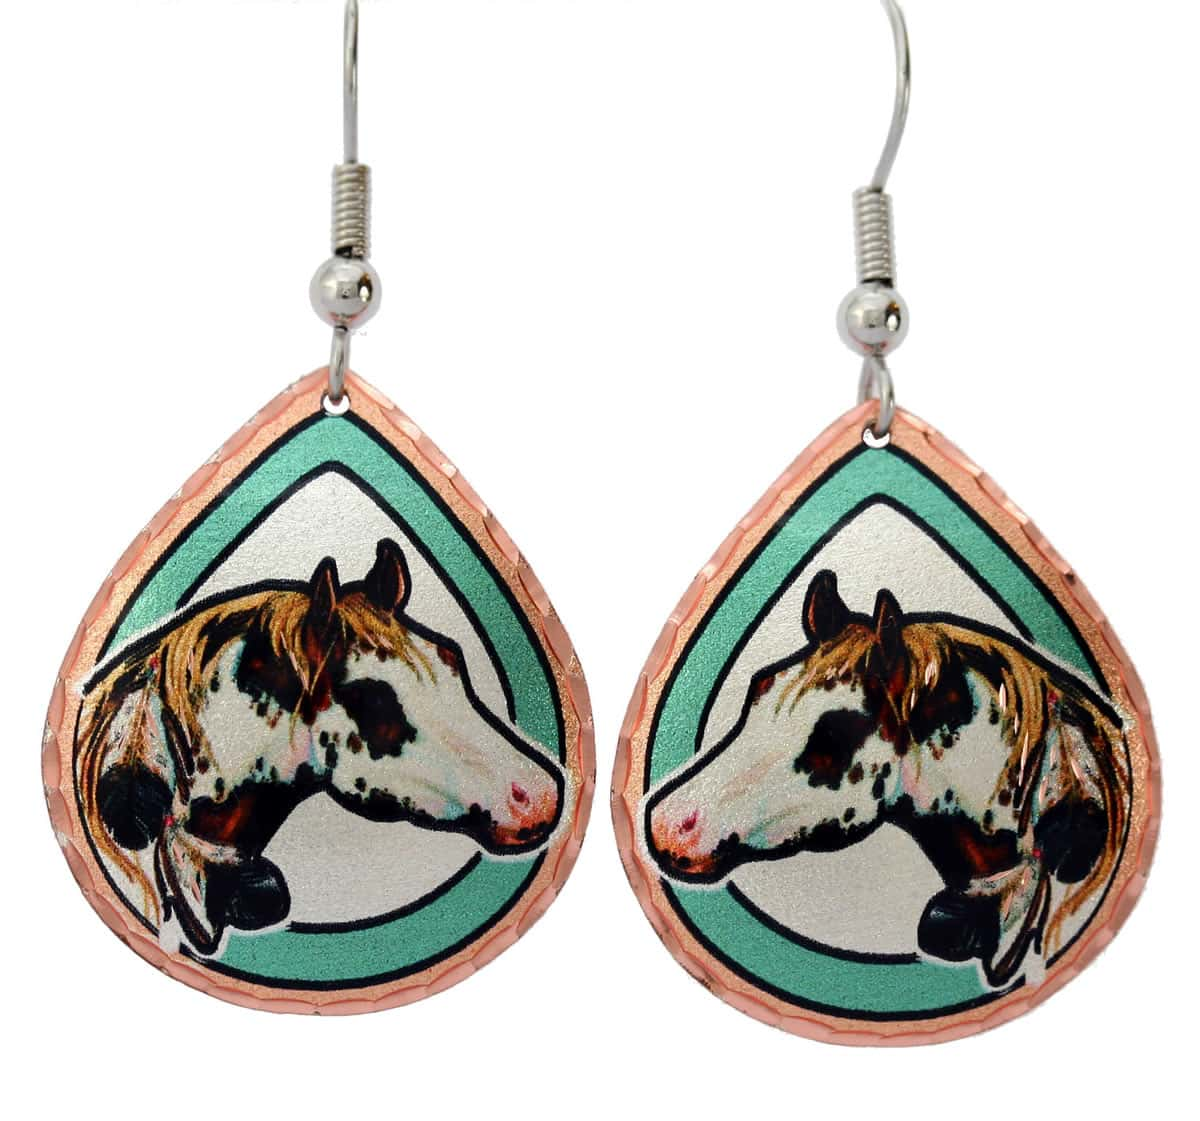 Teardrop horse earrings perfect to accentuate your western fashion style